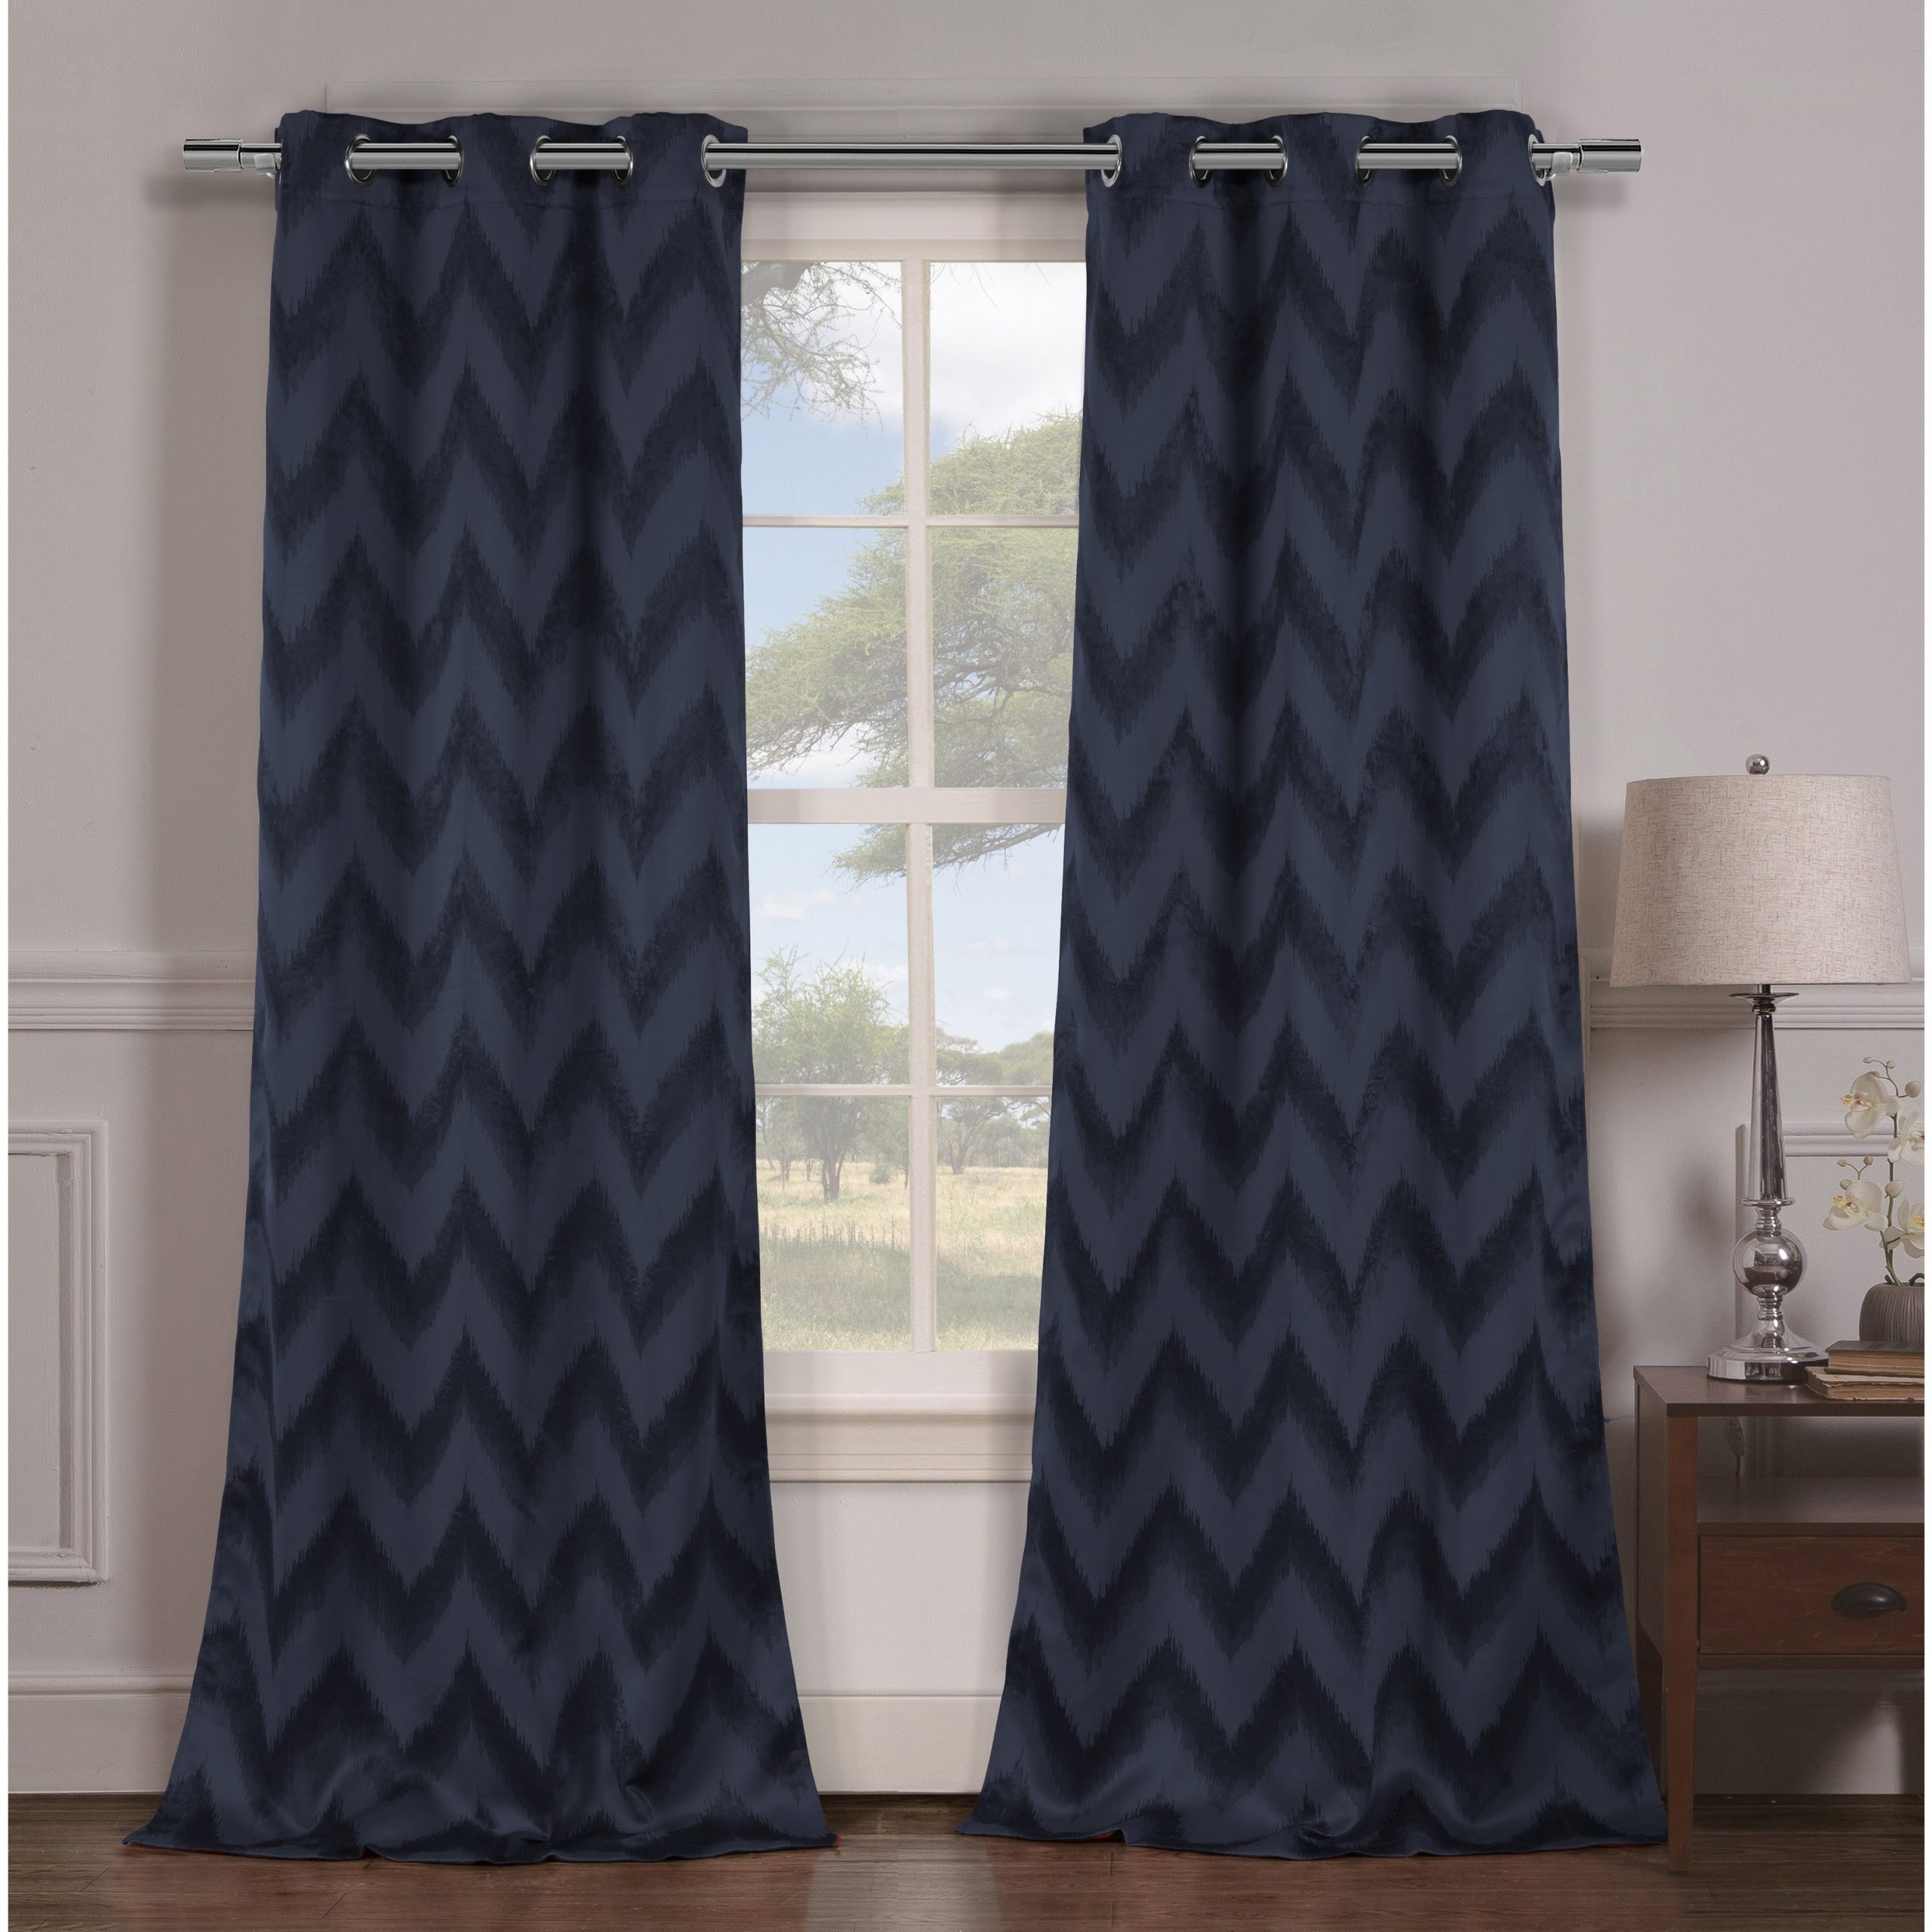 Best And Newest Thermal Insulated Blackout Grommet Top Curtain Panel Pairs Pertaining To Detalles Acerca De Duck River Lysanna Grommet Top Thermal Insulated Blackout Curtain Panel Pair – (View 4 of 20)